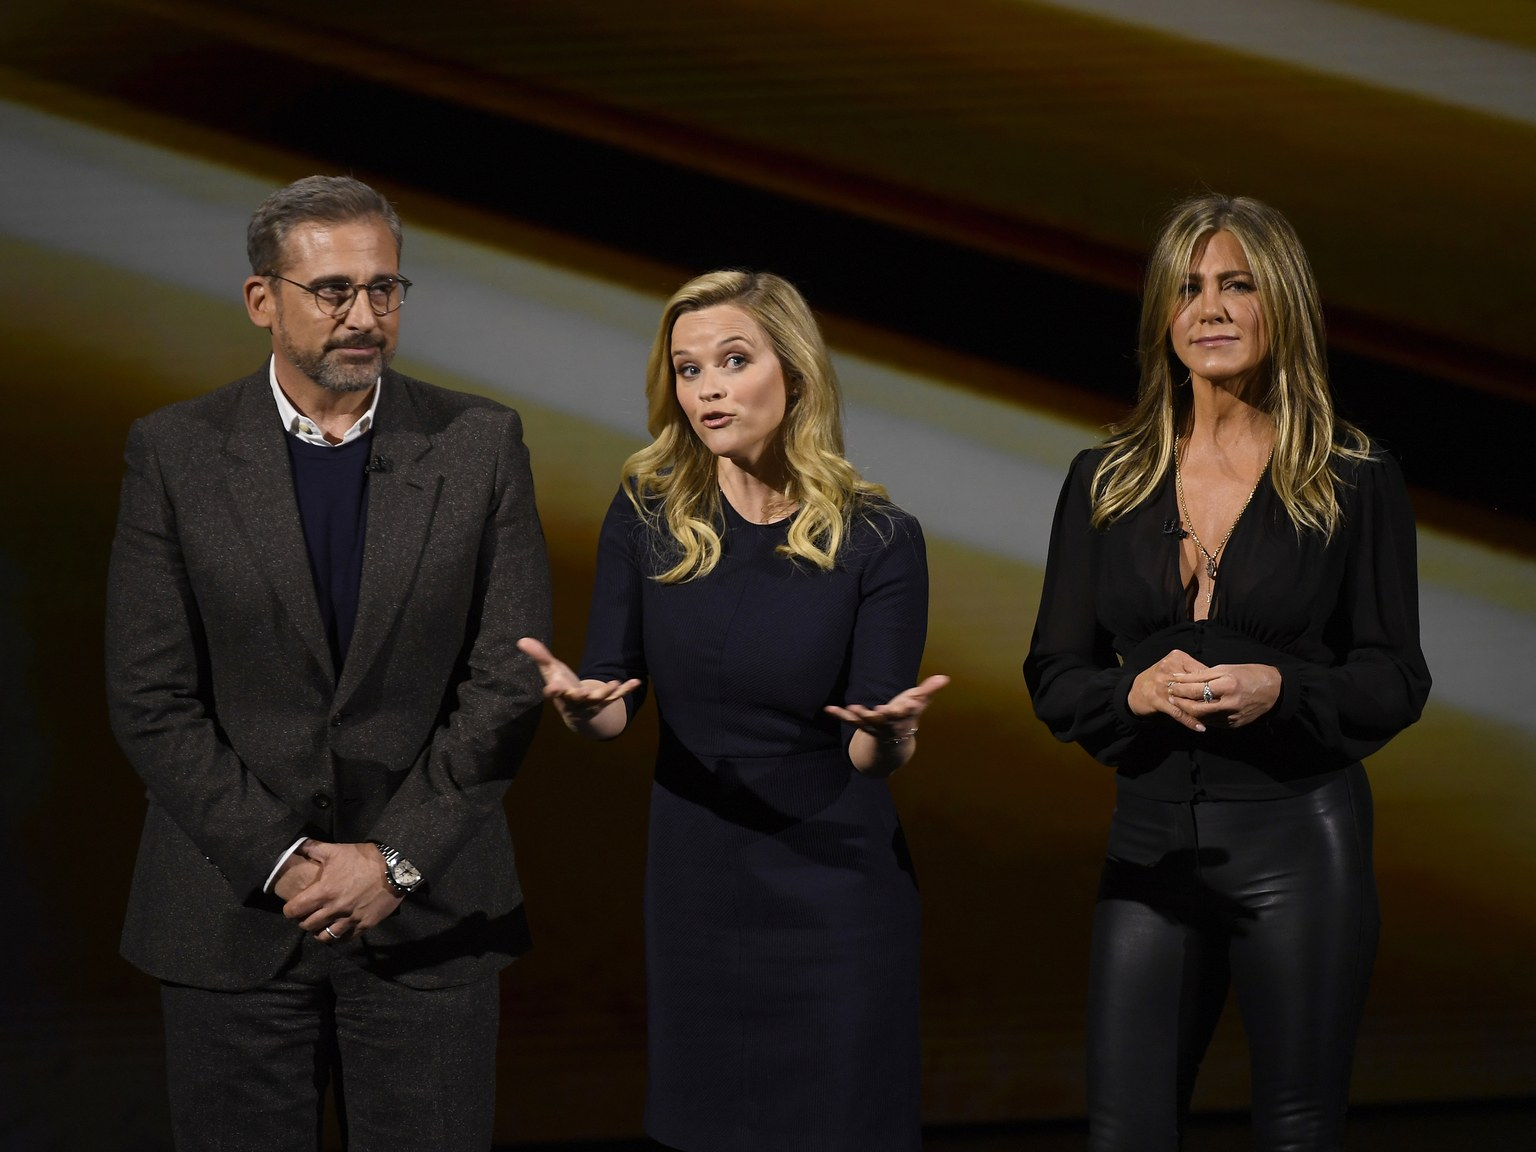 Apple TV+: Ντεμπούτο με Jennifer Aniston, Reese Witherspoon και Steve Carell!